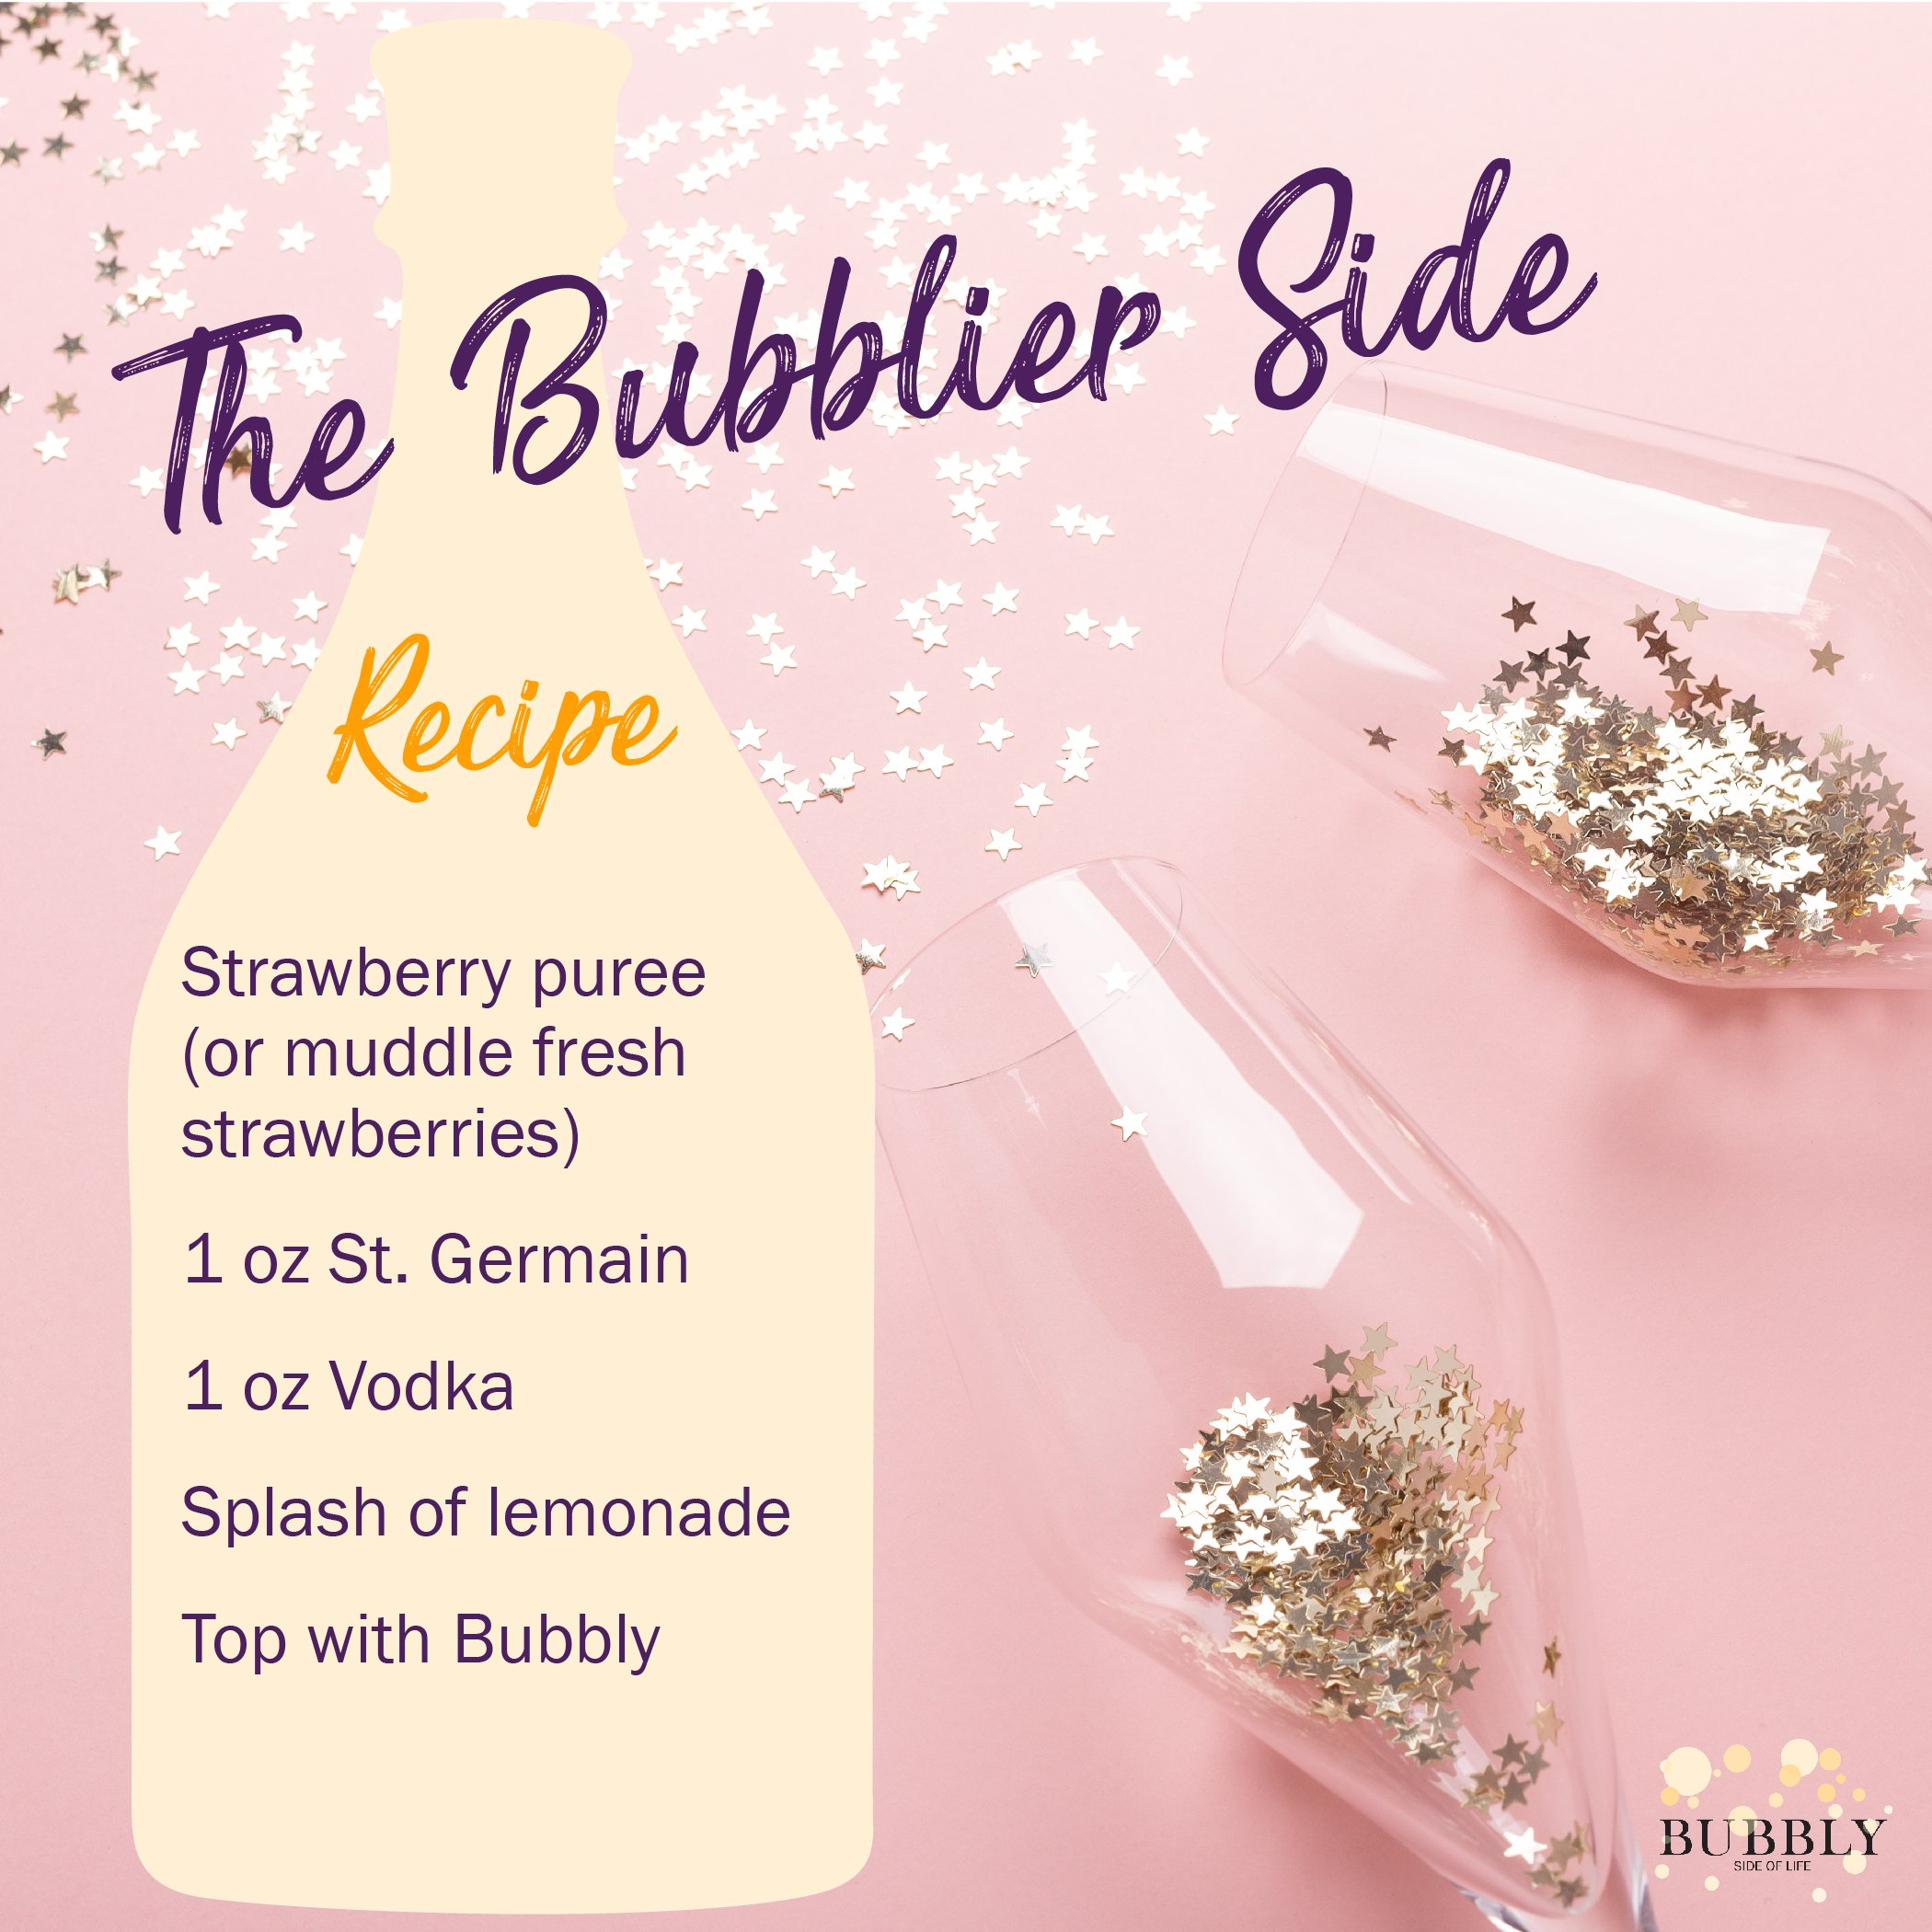 The bubblier Side of Life recipe card